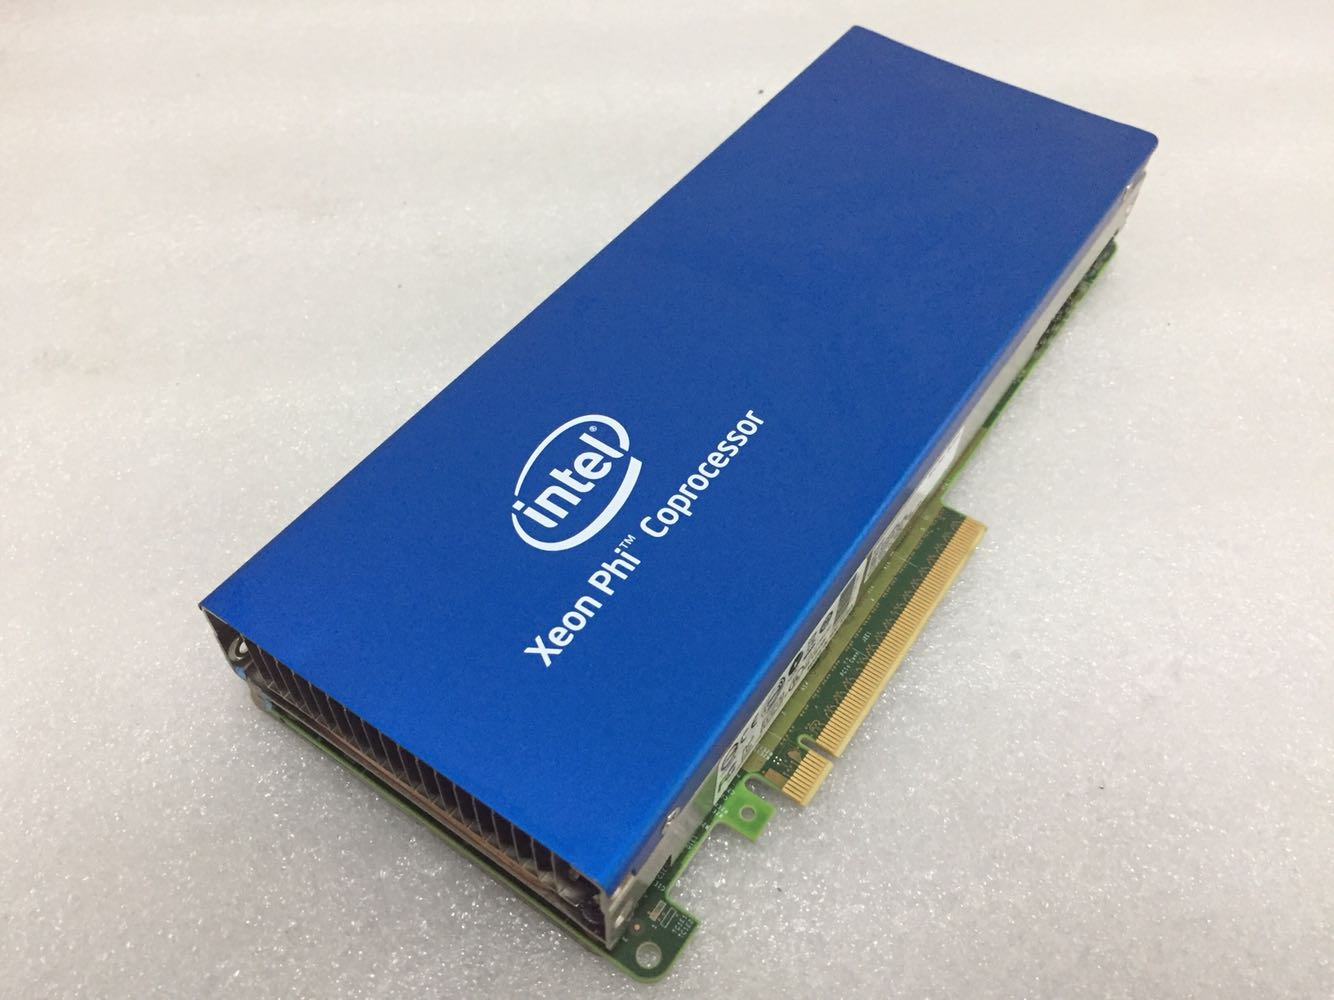 133 40]cheap purchase INTEL Xeon Phi 31S1P CPU Acceleration Card